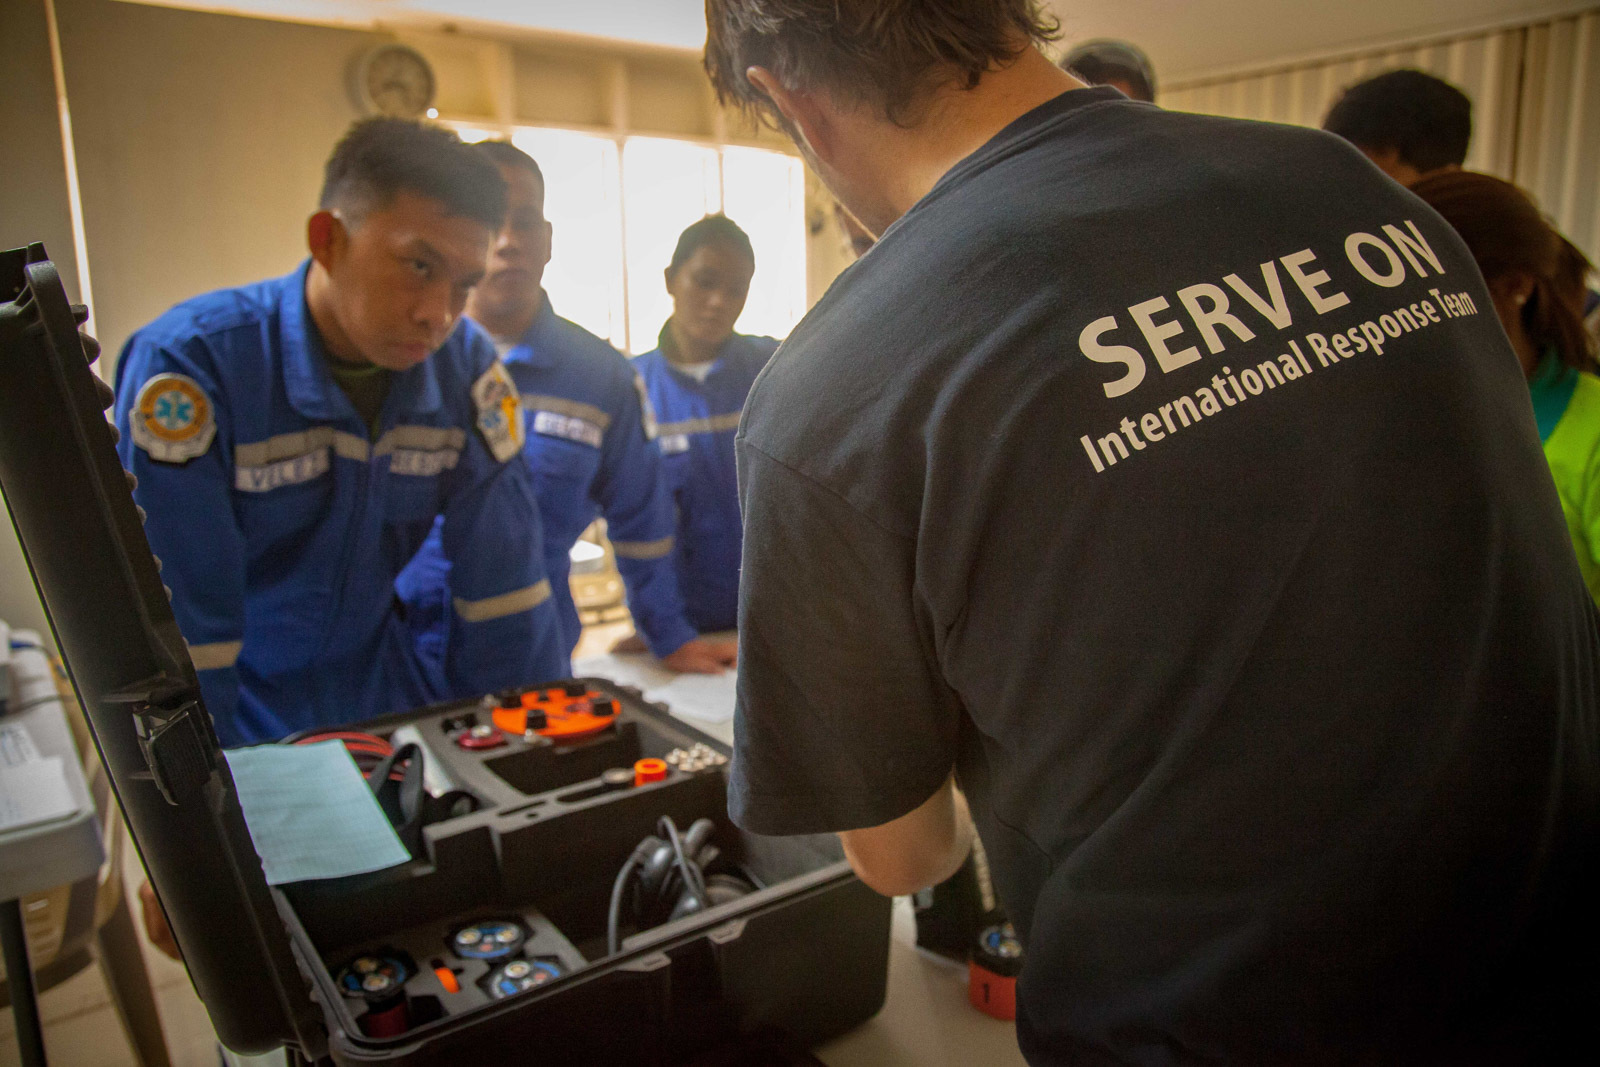 Technical equipment instruction for the local emergency responders.